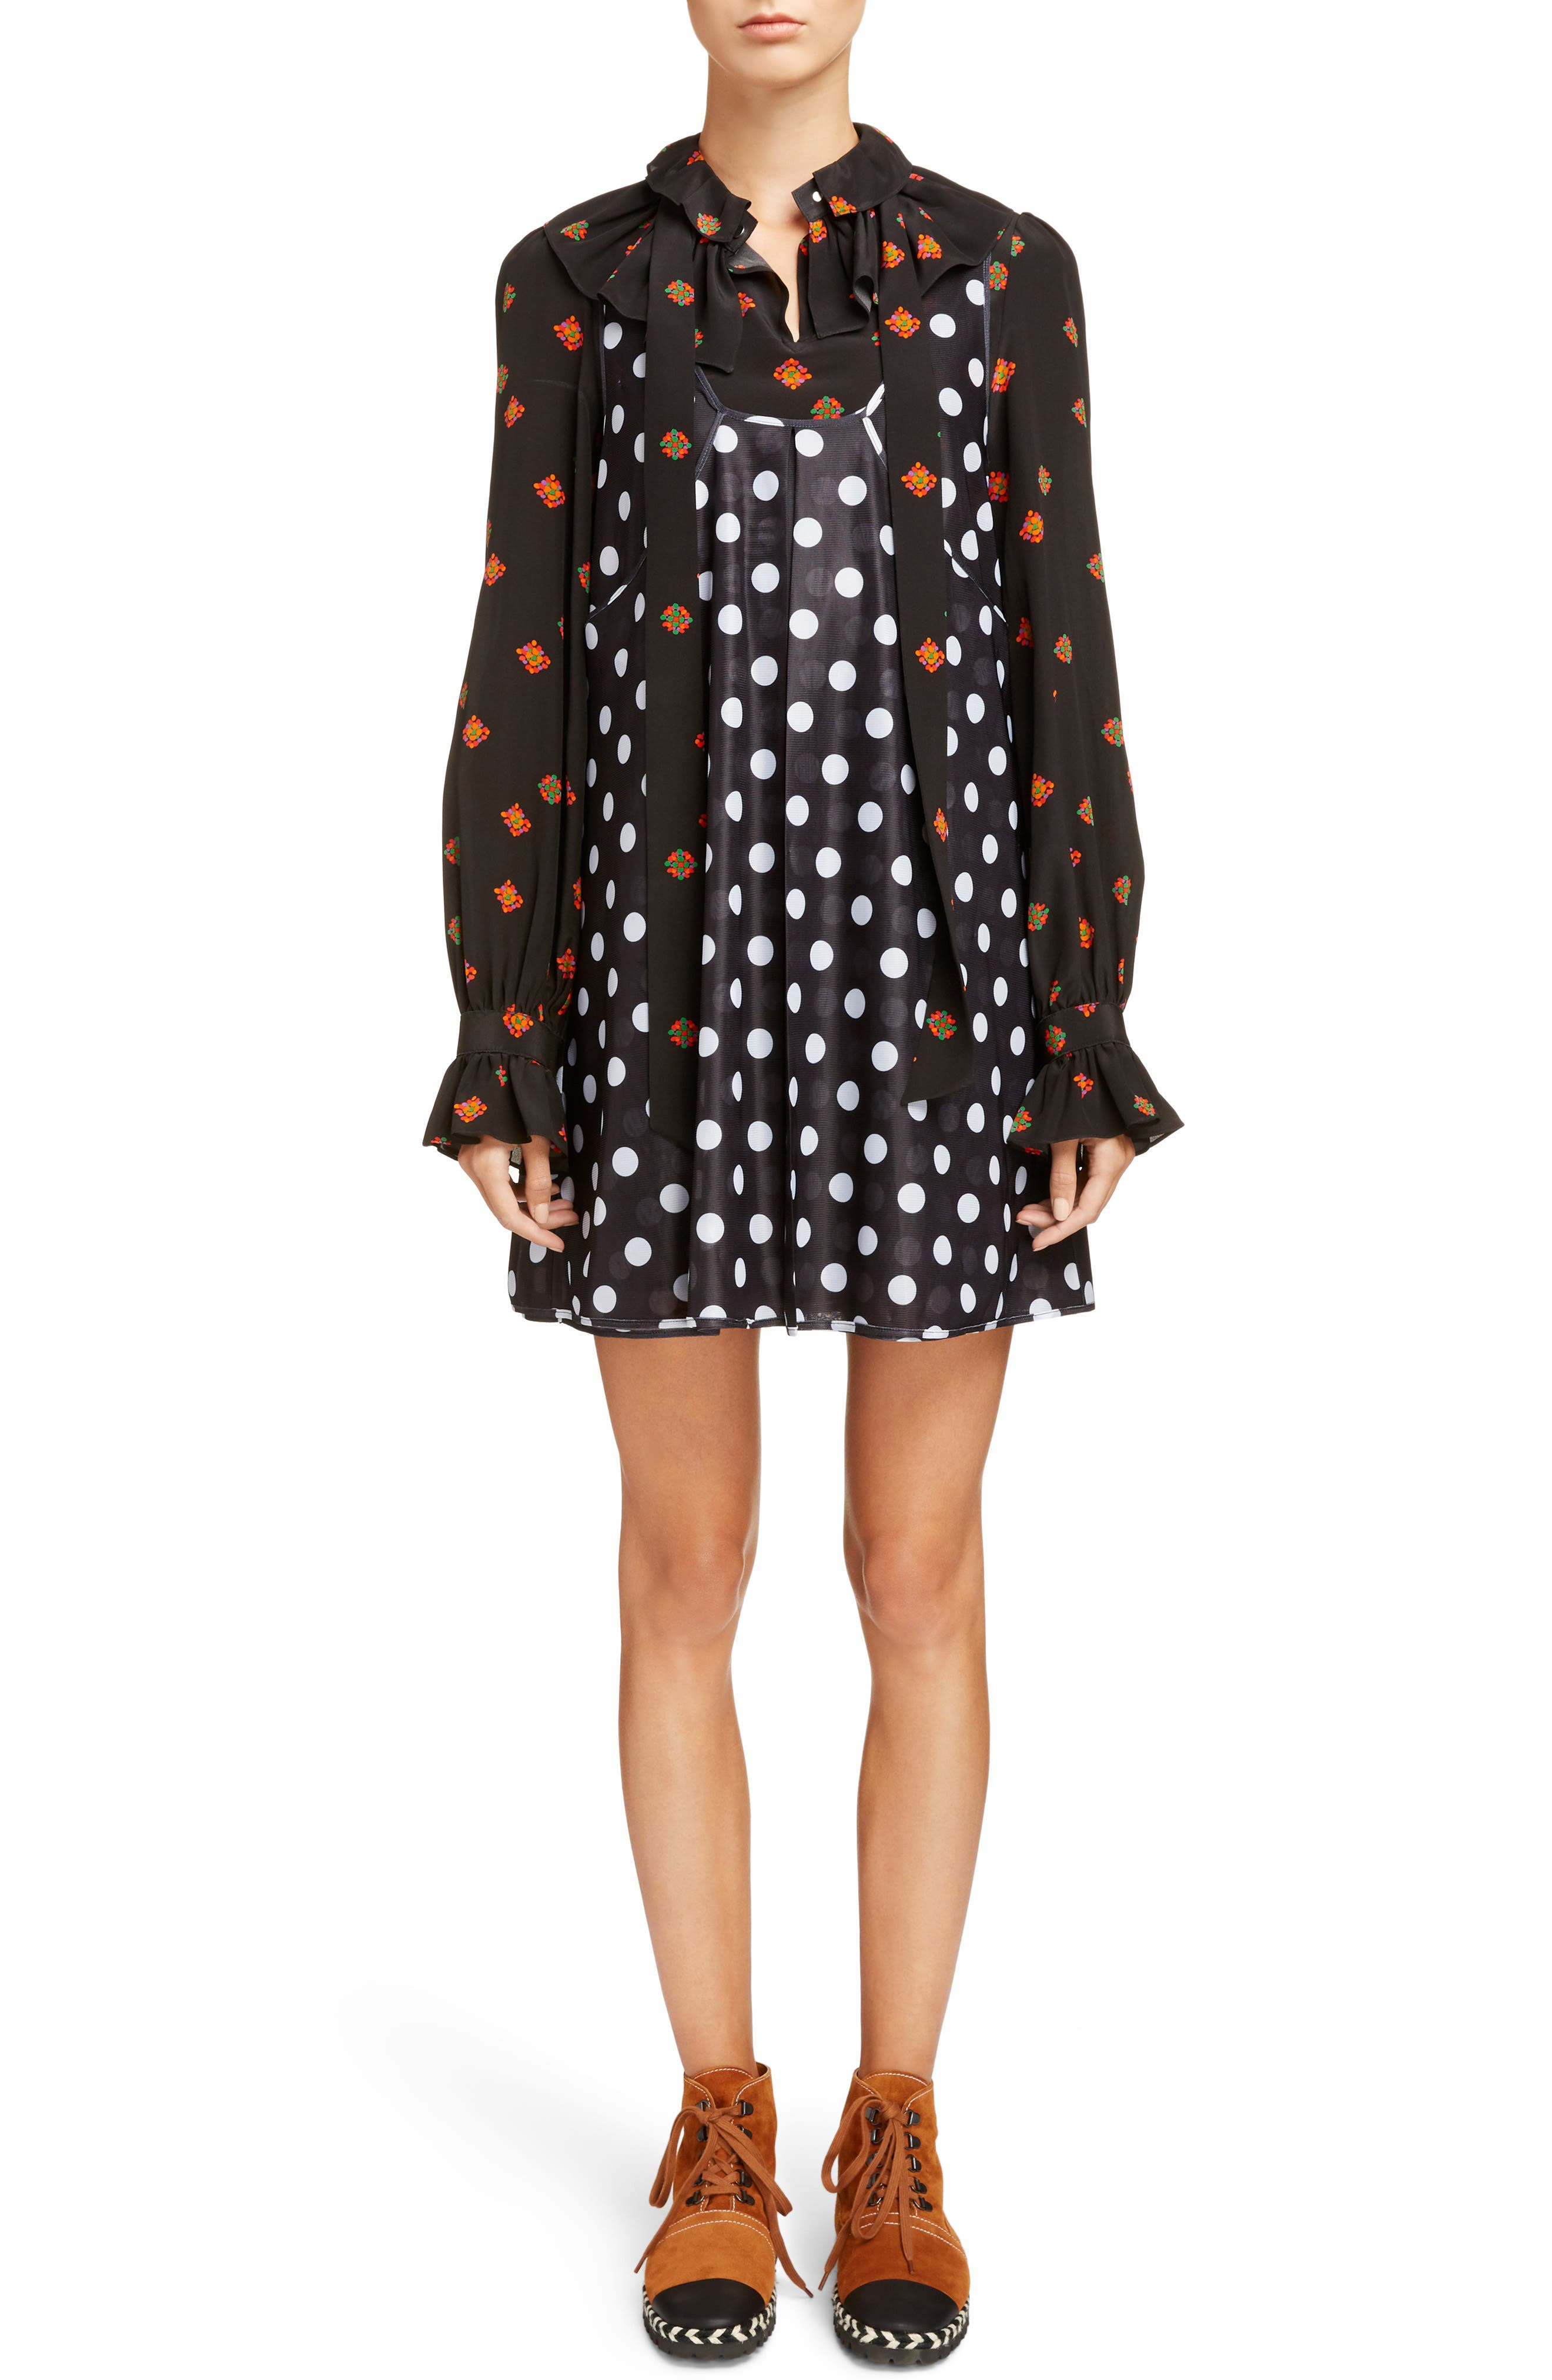 J.W.ANDERSON Polka Dot Minidress with Ditsy Floral Blouse